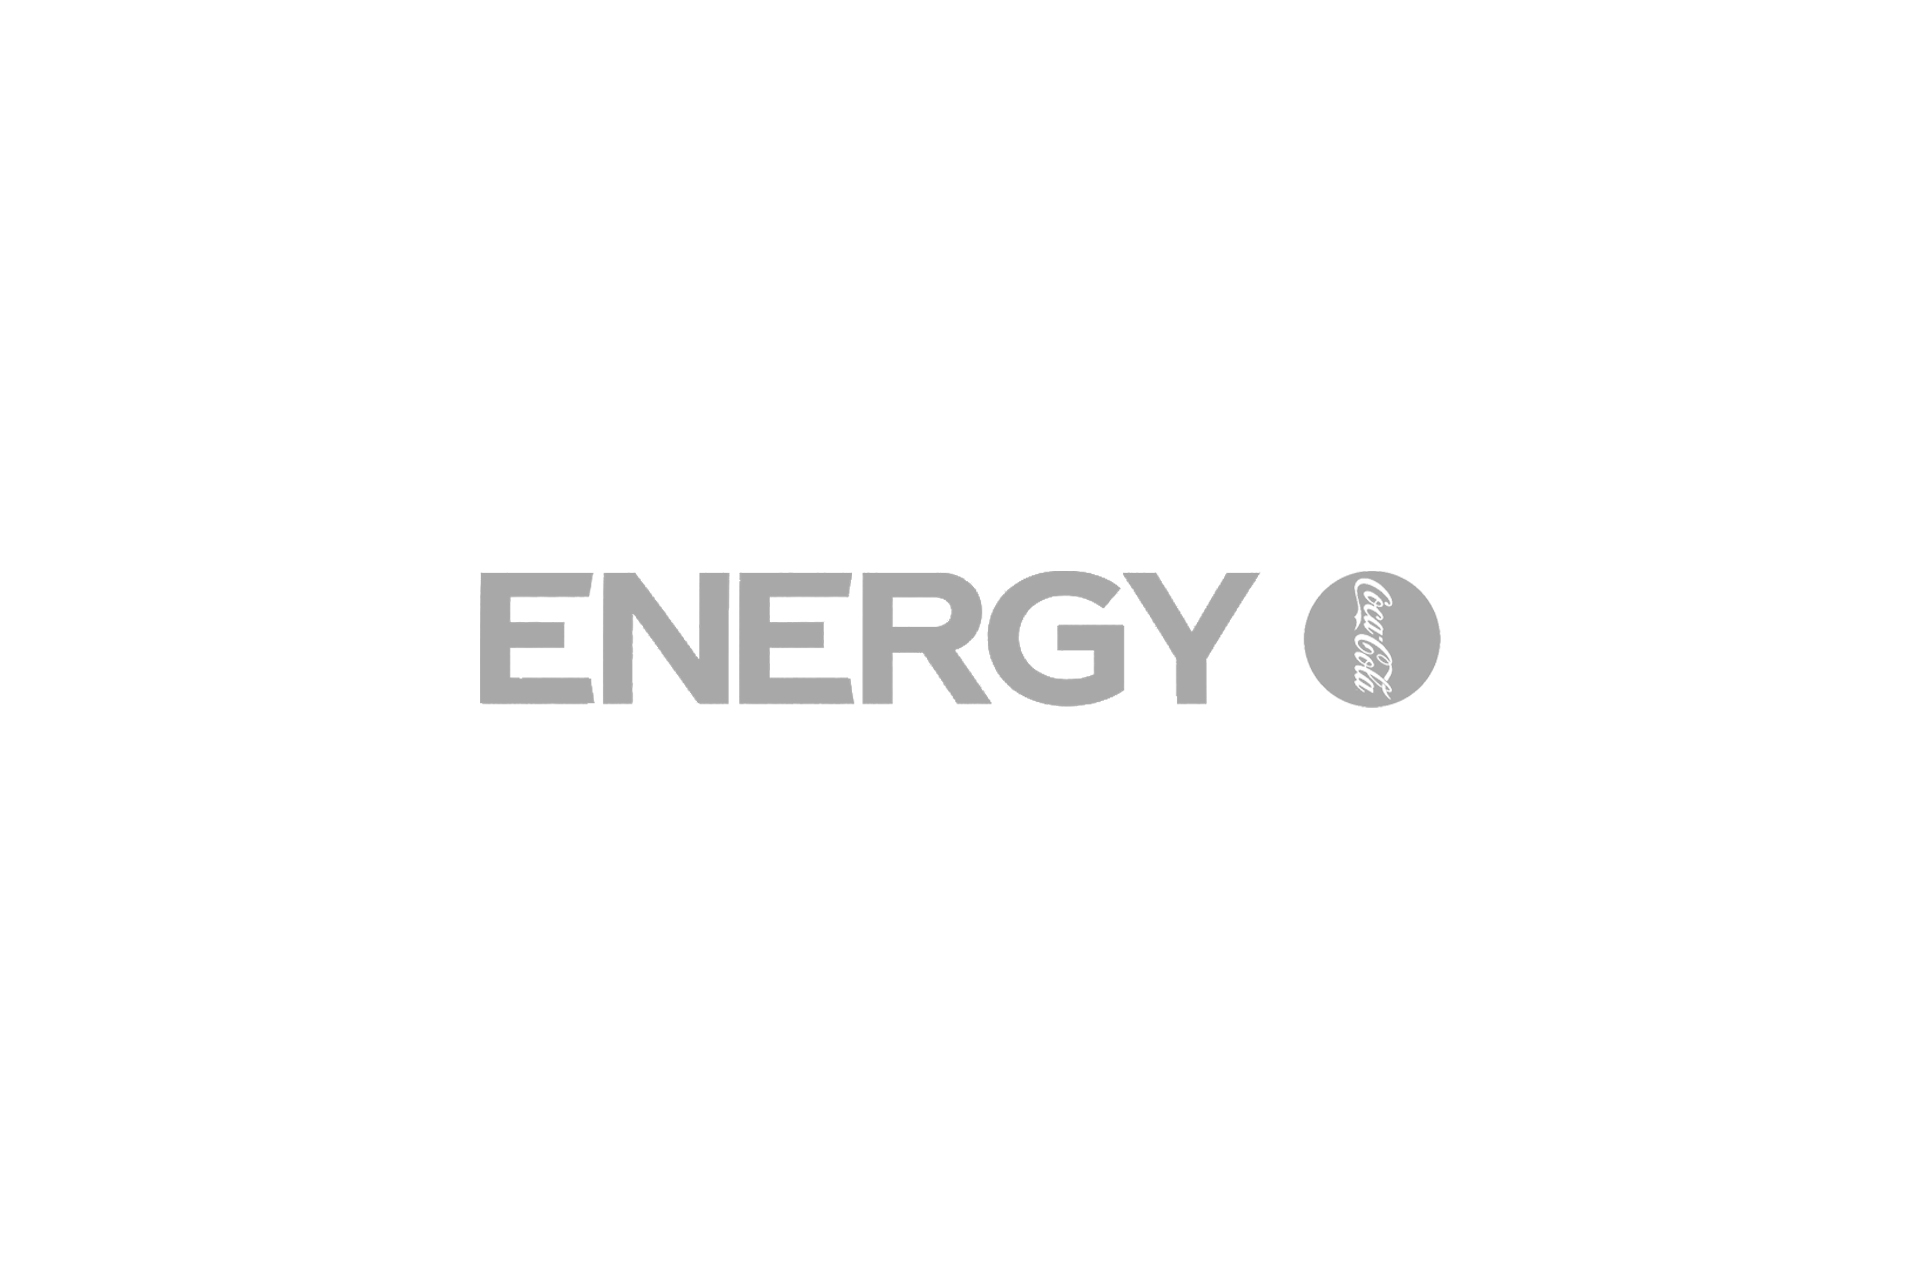 coca cola energy logo grey